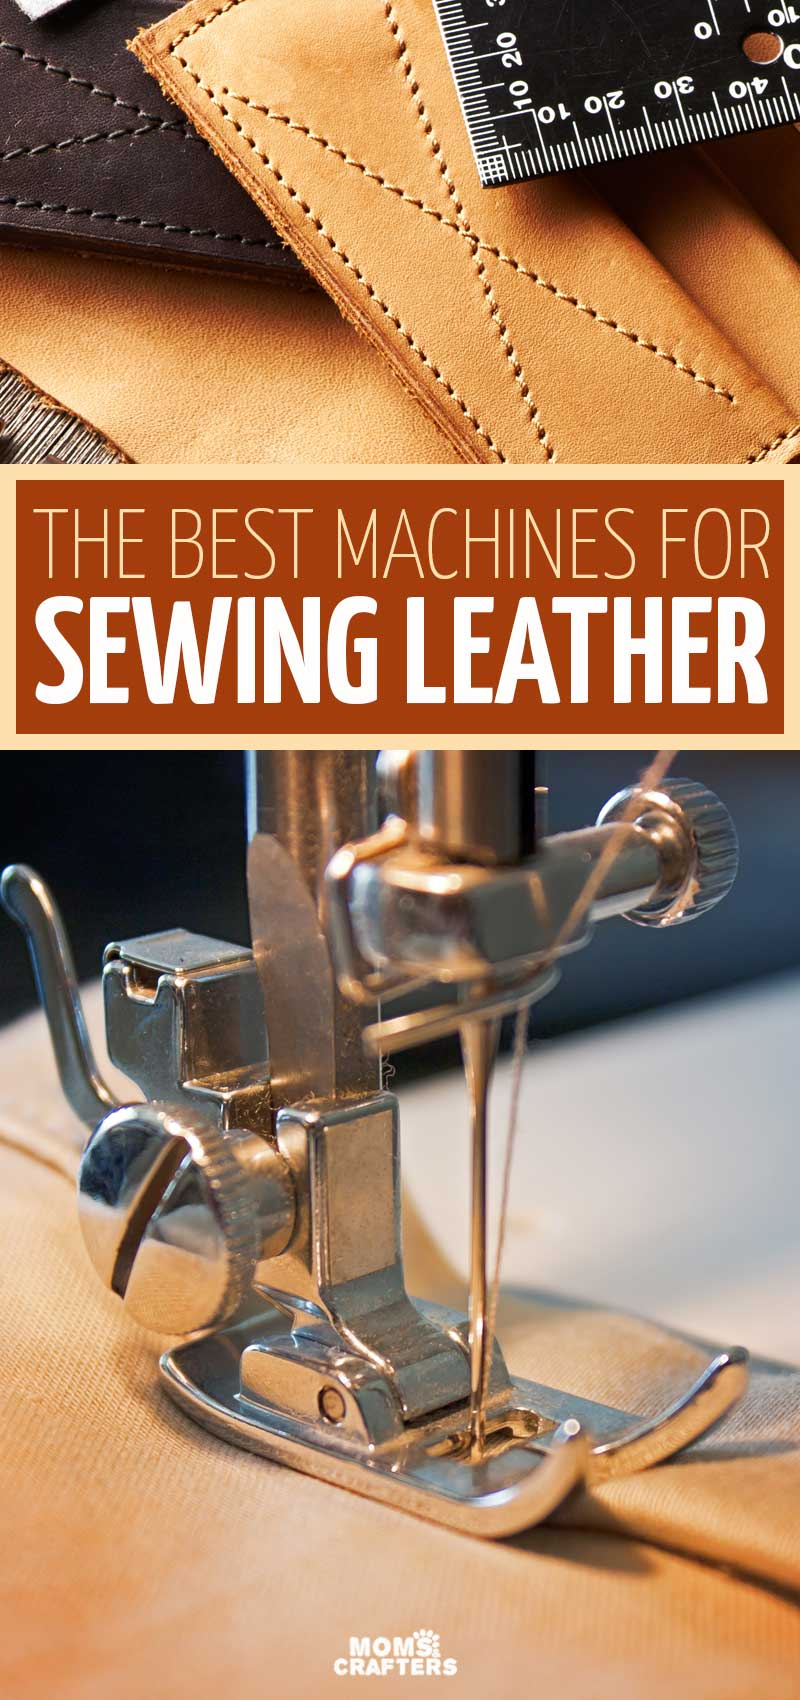 Click for sewing tips and the best machine for sewing leather! Learn how to sew leather crafts using a sewing machine, which needles you need, and more tips for sewing leather with a sewing machine.